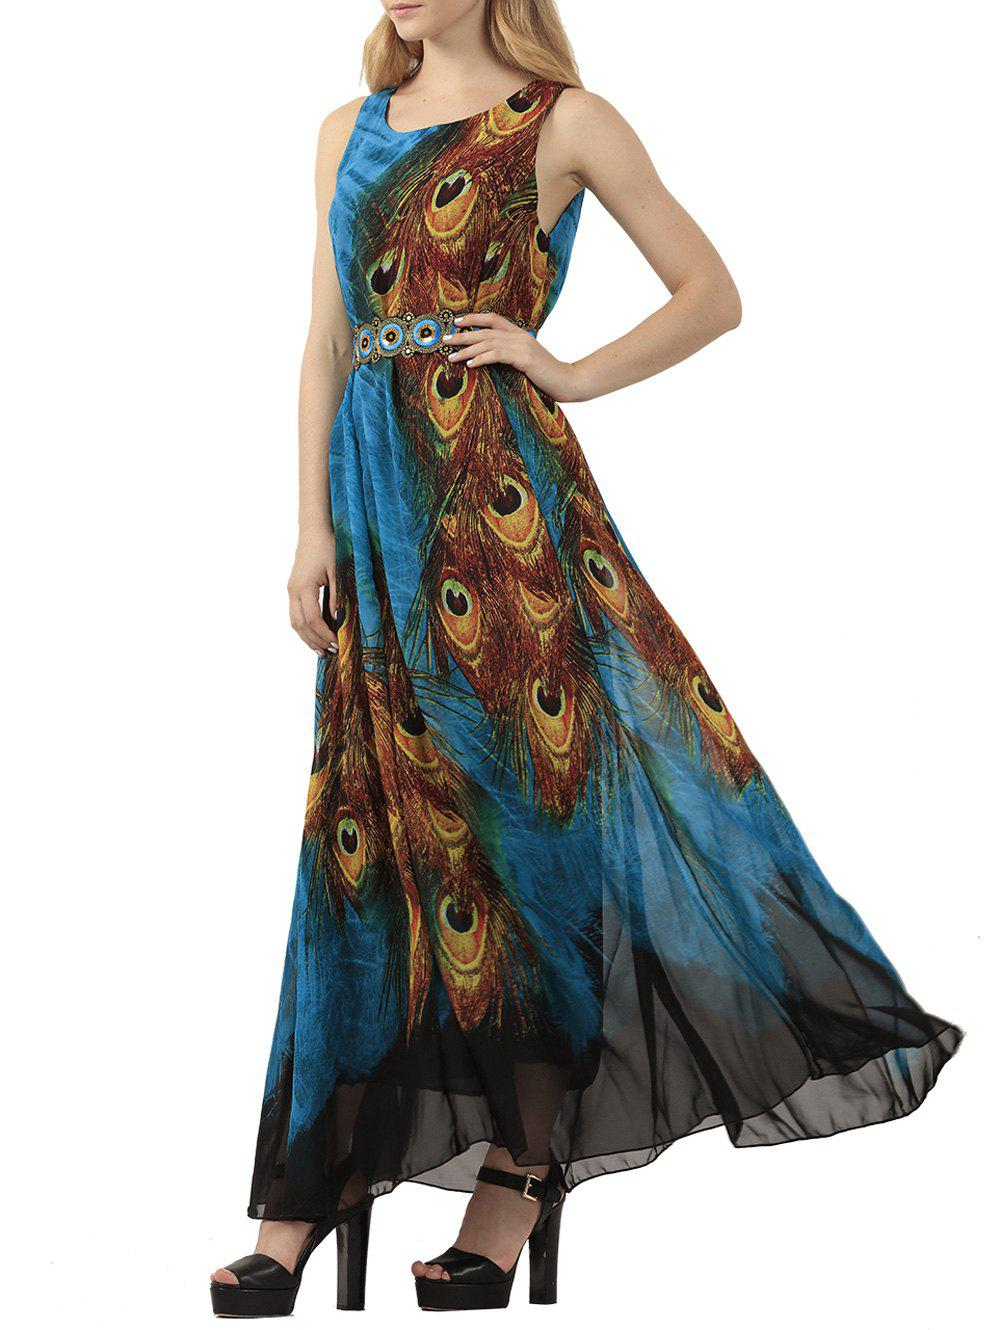 Bohemian Tie-Dye Peacock Leather Print Maxi DressWOMEN<br><br>Size: XL; Color: PEACOCK BLUE; Style: Bohemian; Material: Polyester; Fabric Type: Chiffon; Silhouette: Beach; Dresses Length: Floor-Length; Neckline: Scoop Neck; Sleeve Length: Sleeveless; Pattern Type: Print; With Belt: No; Season: Spring,Summer; Weight: 0.378kg; Package Contents: 1 x Dress;